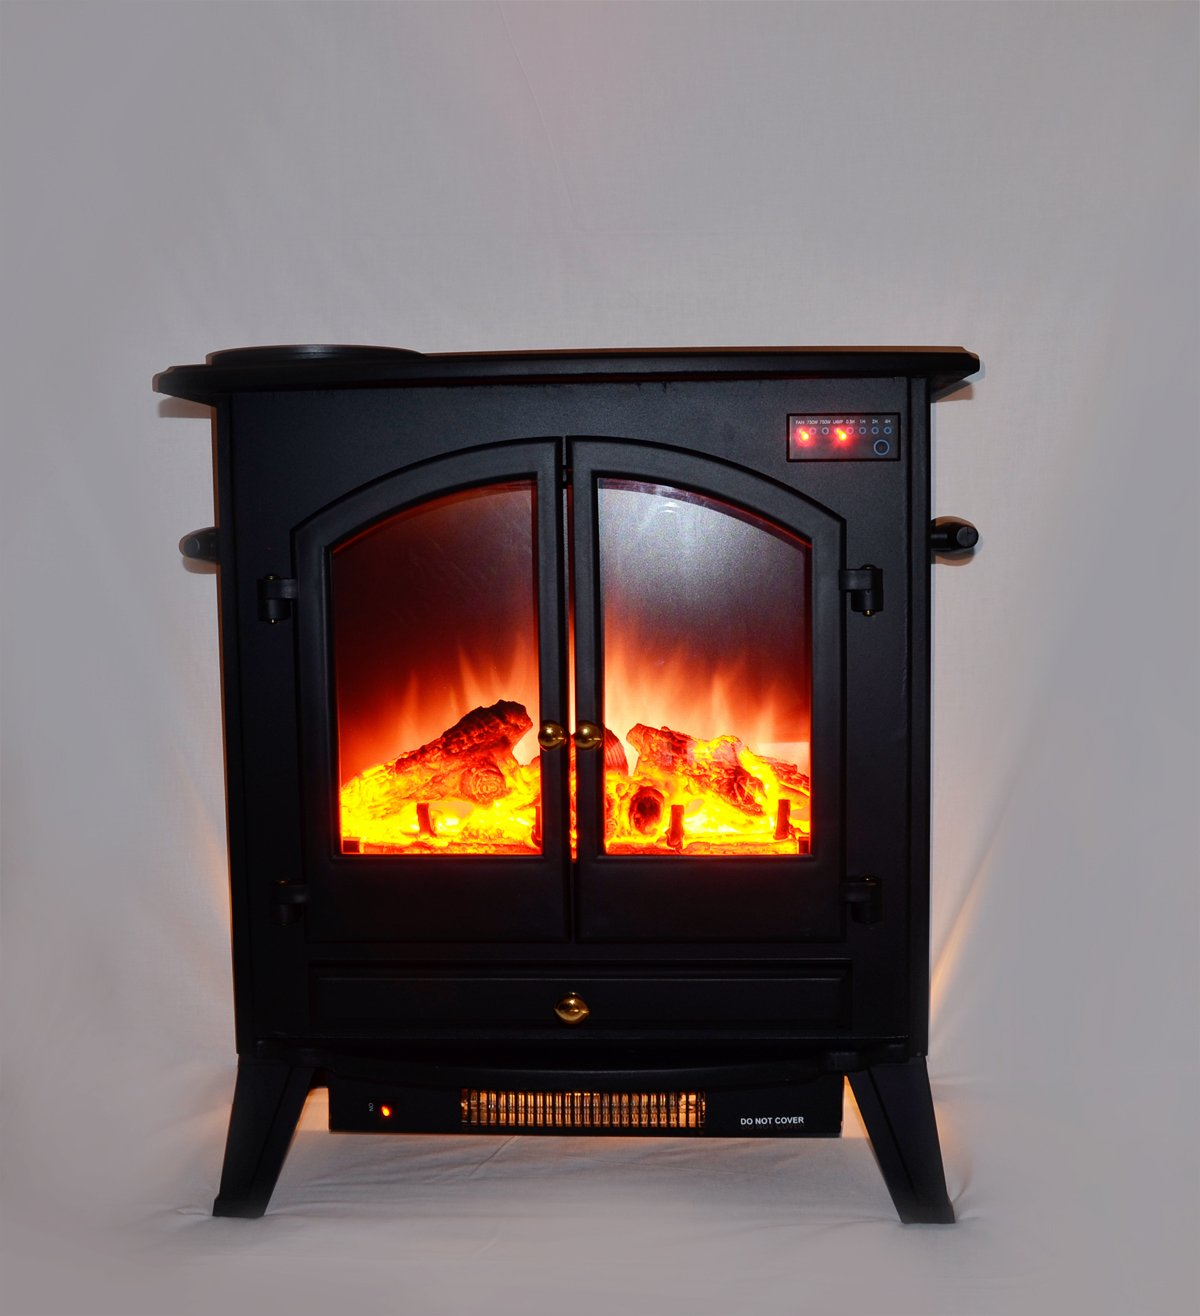 much electric big fireplaces how fireplace are lots sale on